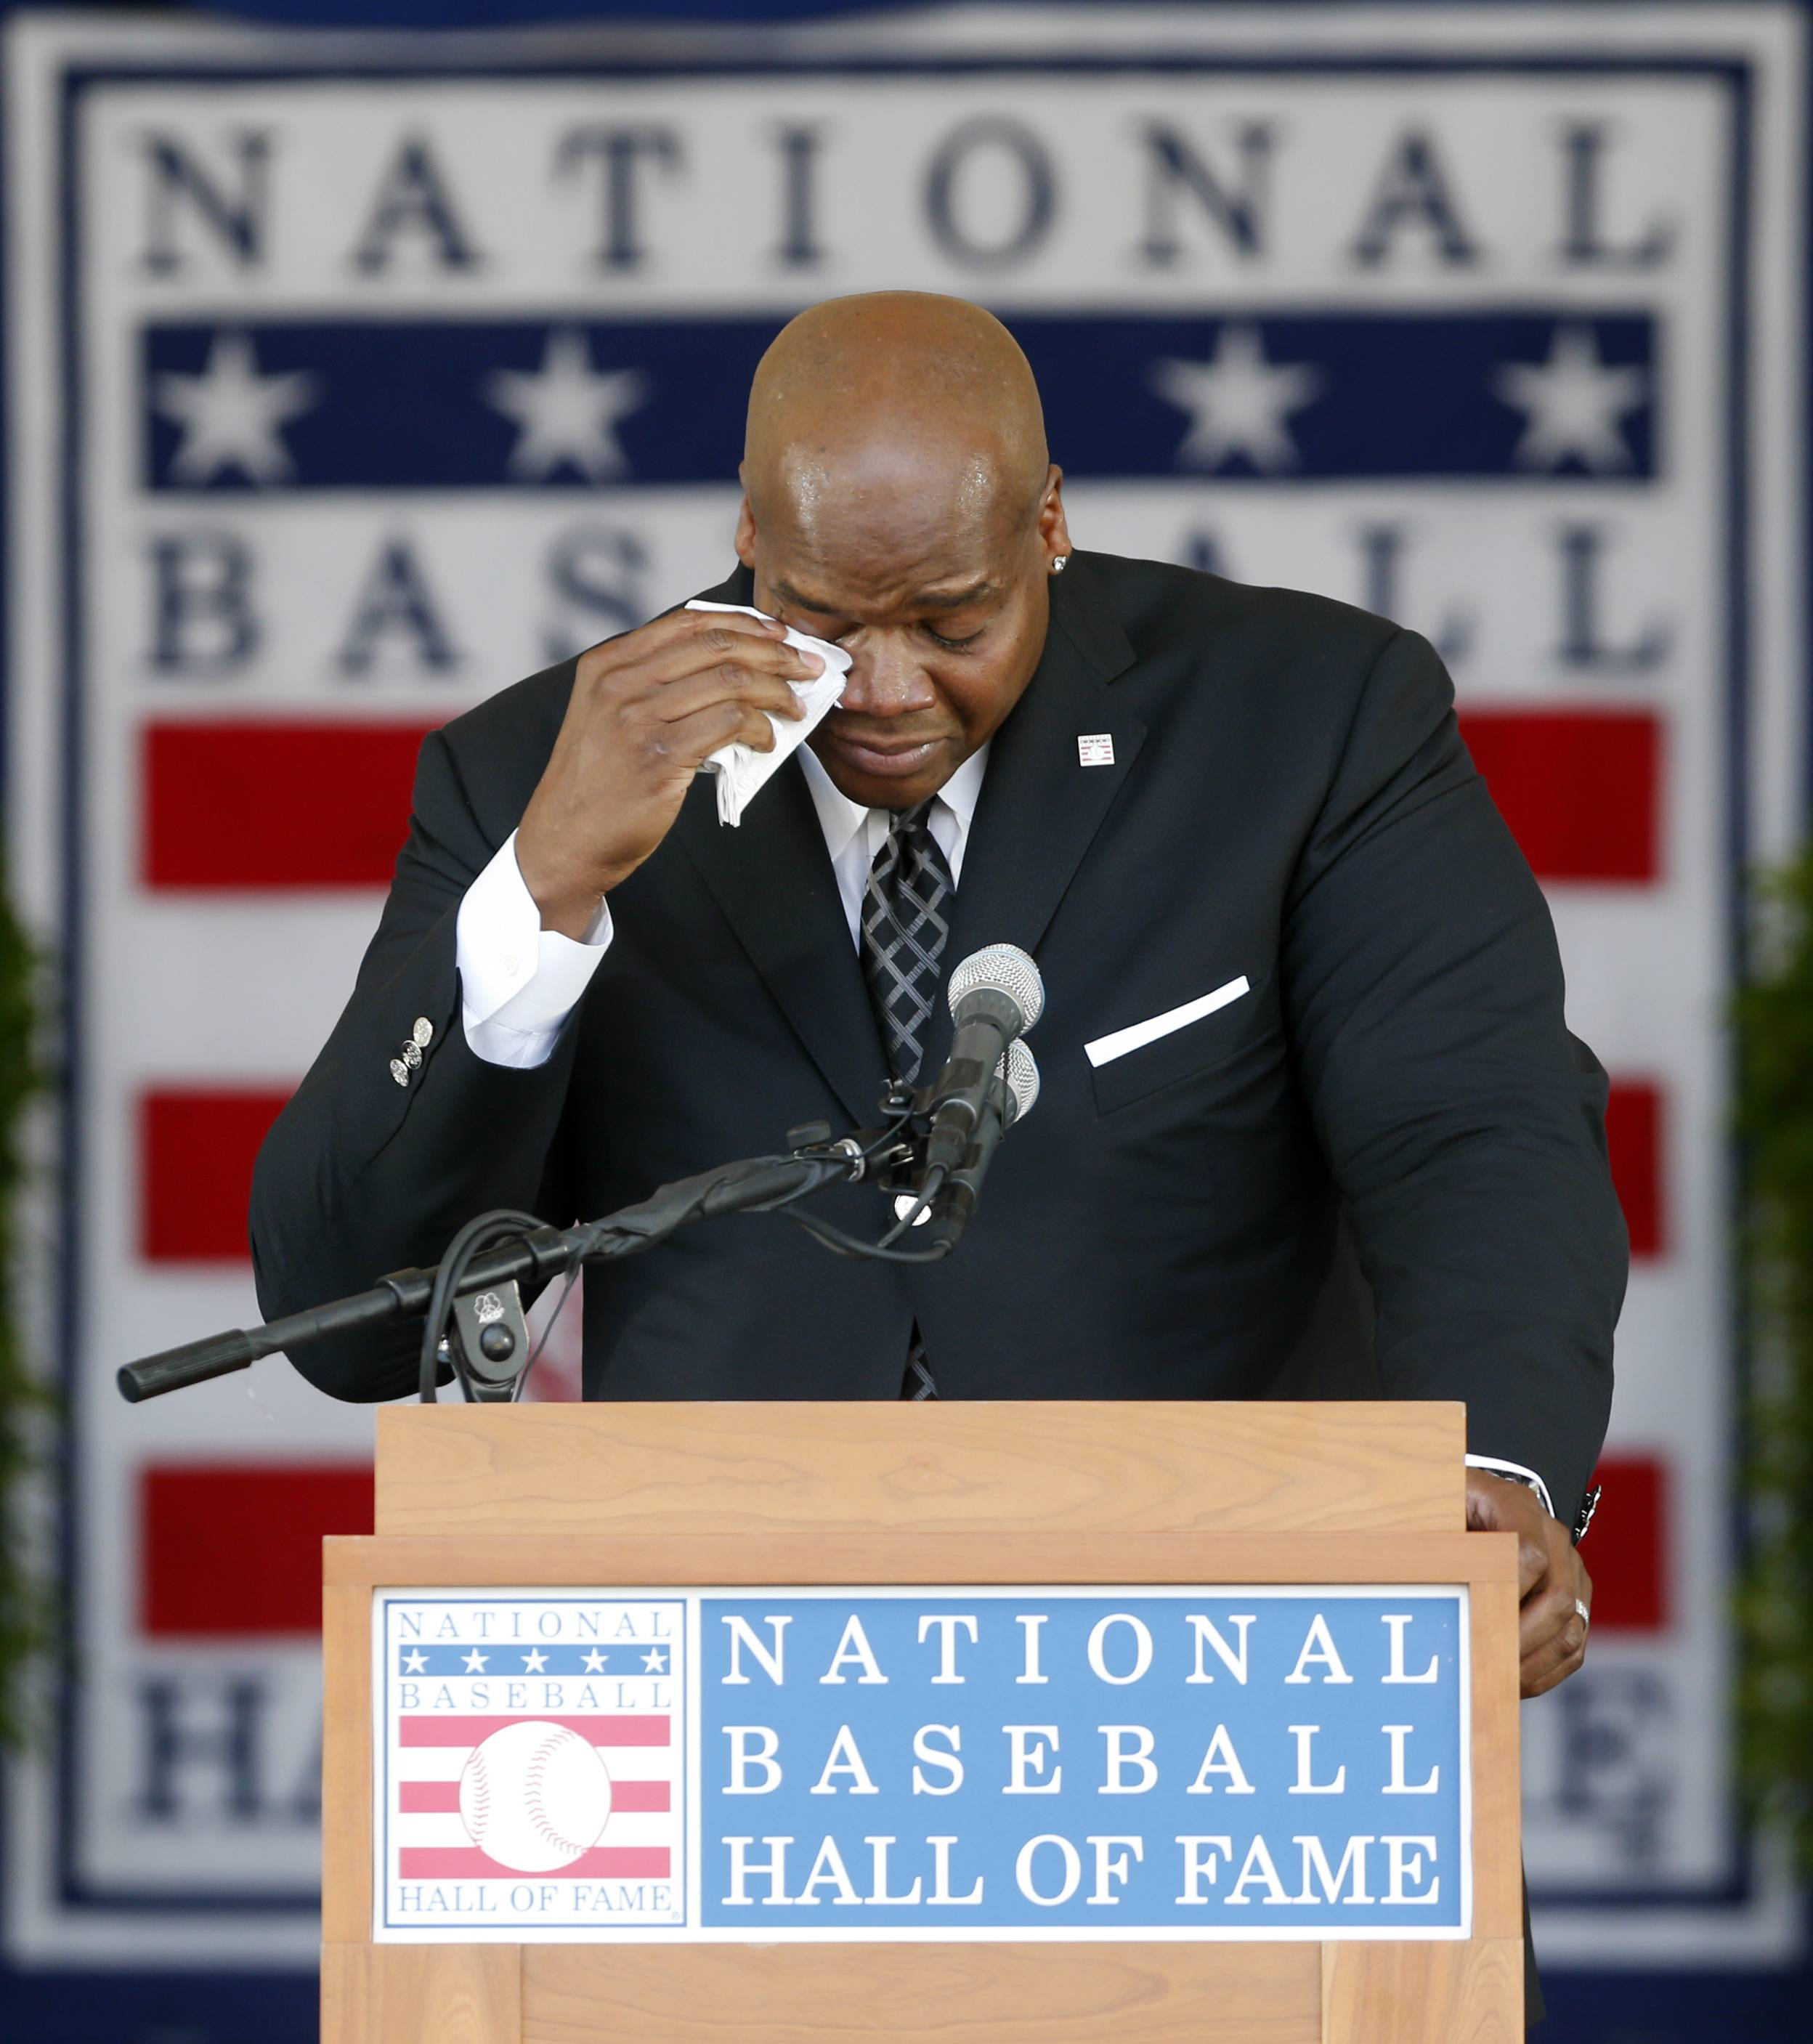 National Baseball Hall of Fame inductee Frank Thomas gets emotional as he speaks during an induction ceremony at the Clark Sports Center on Sunday, July 27, 2014, in Cooperstown, N.Y.